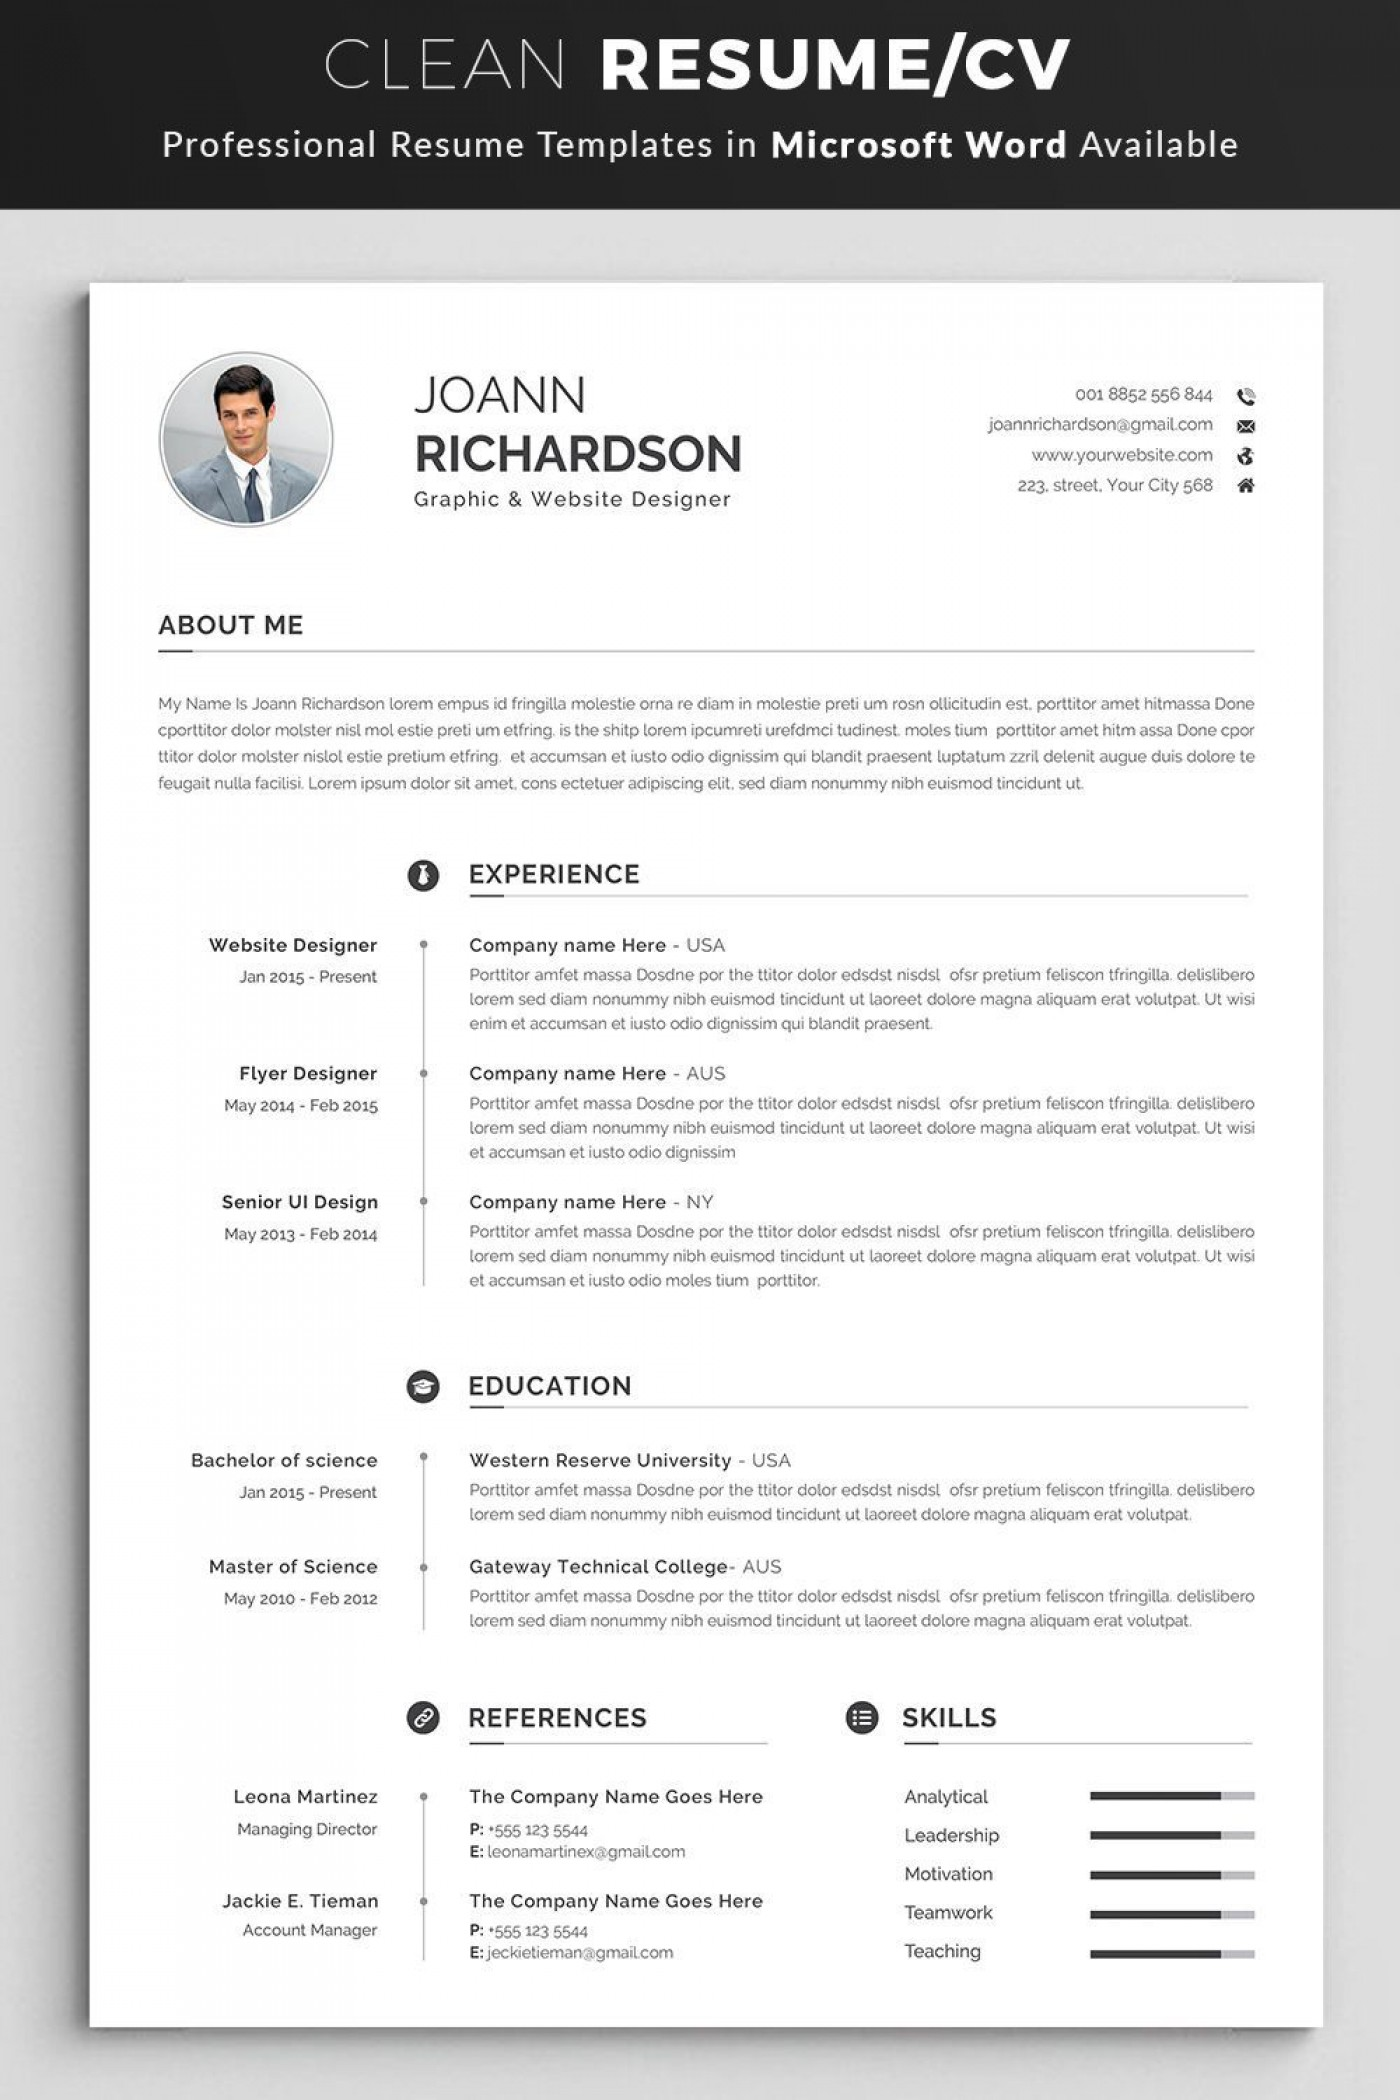 000 Excellent Make A Resume Template In Word High Def  How To Create 2010 20131400